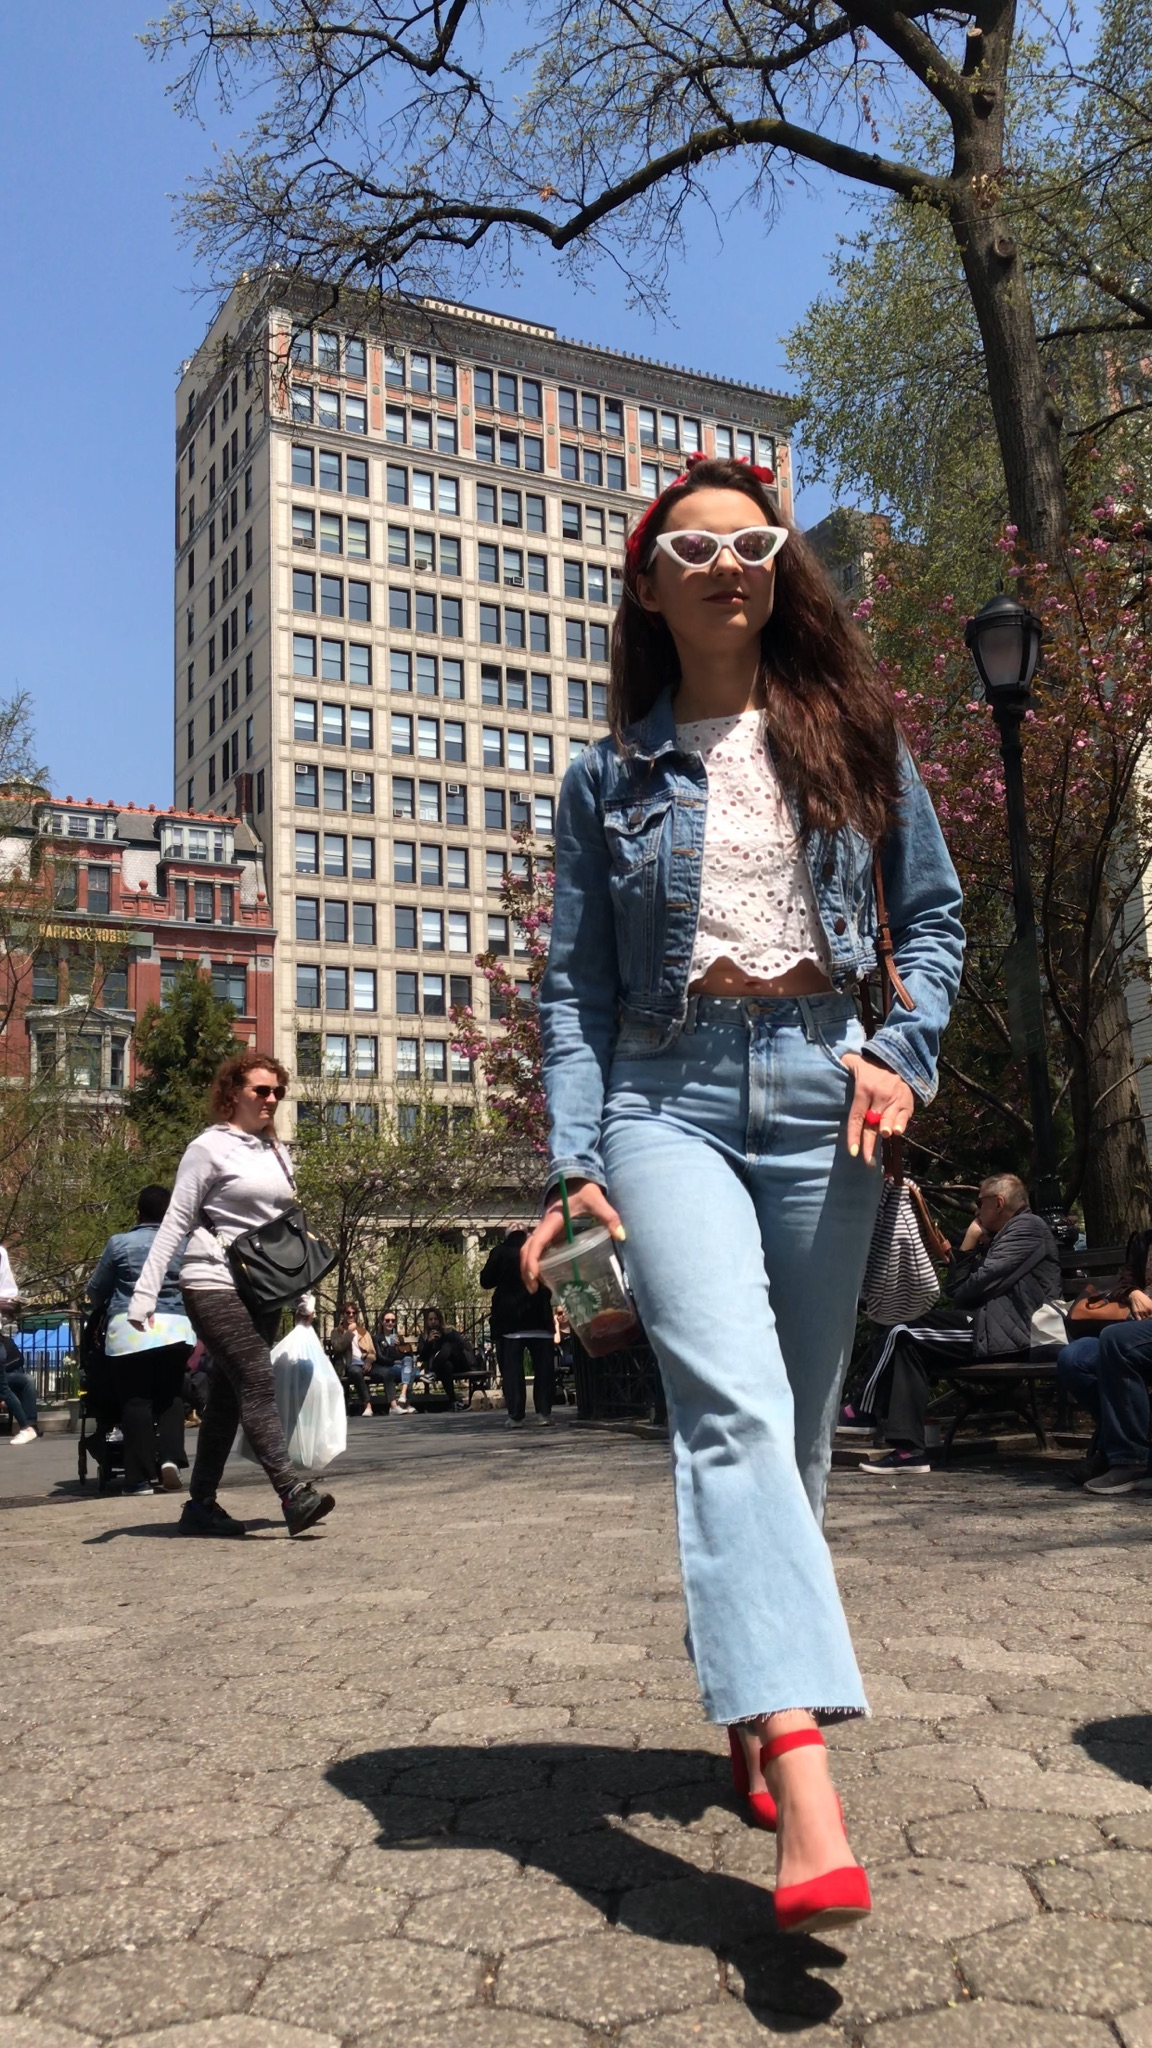 Union Square Park, where you will find me most.